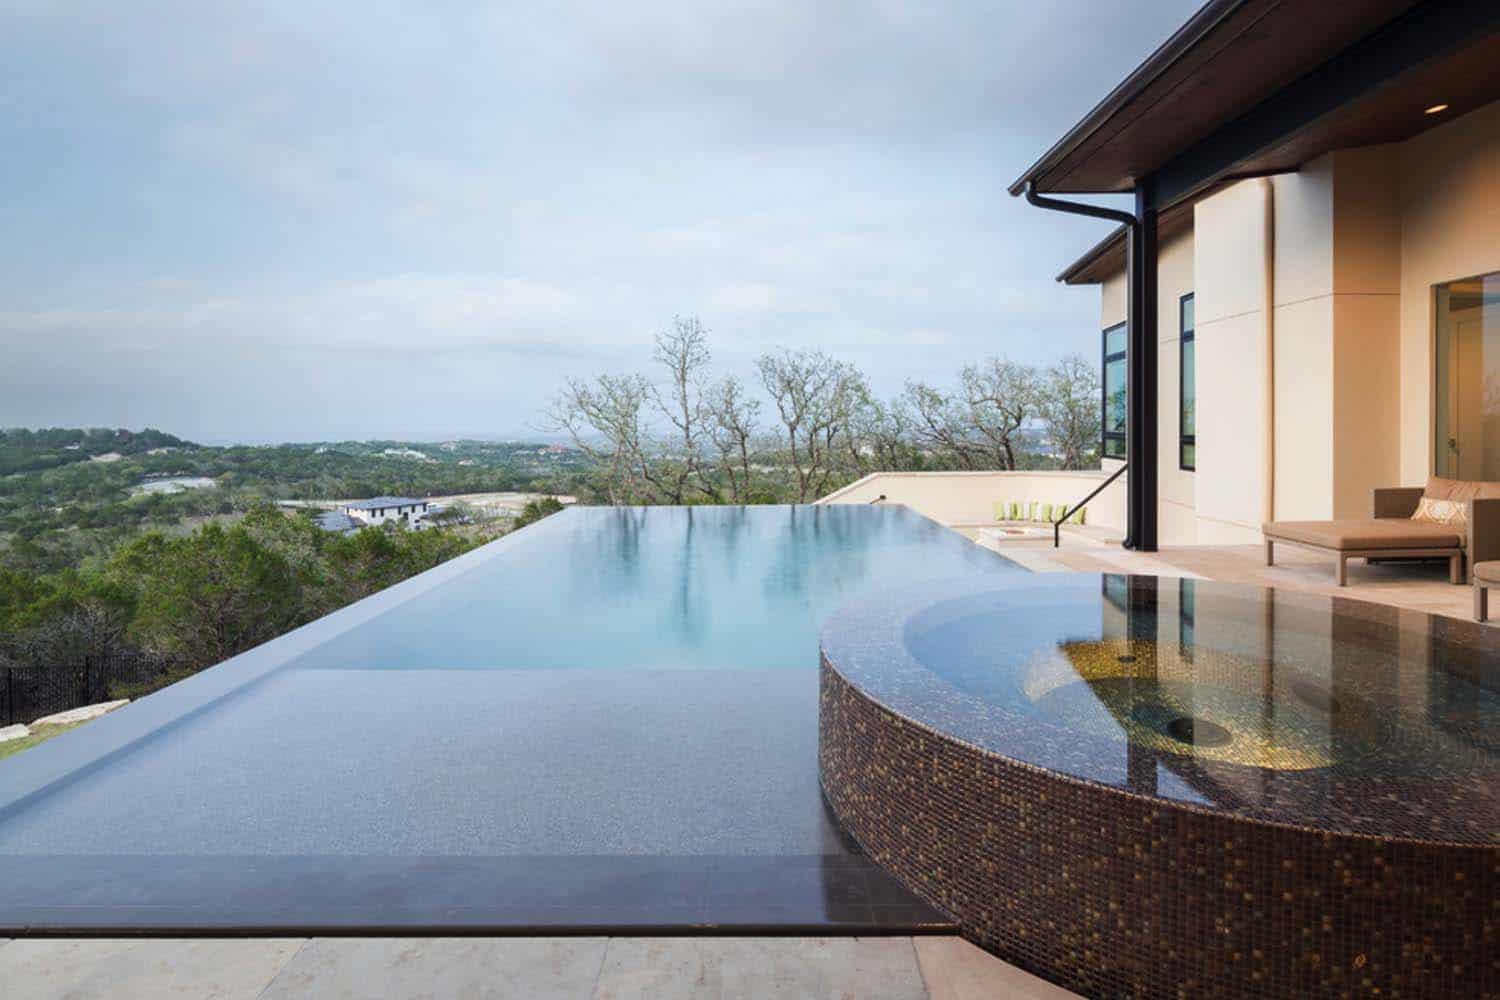 contemporary-hilltop-home-pool